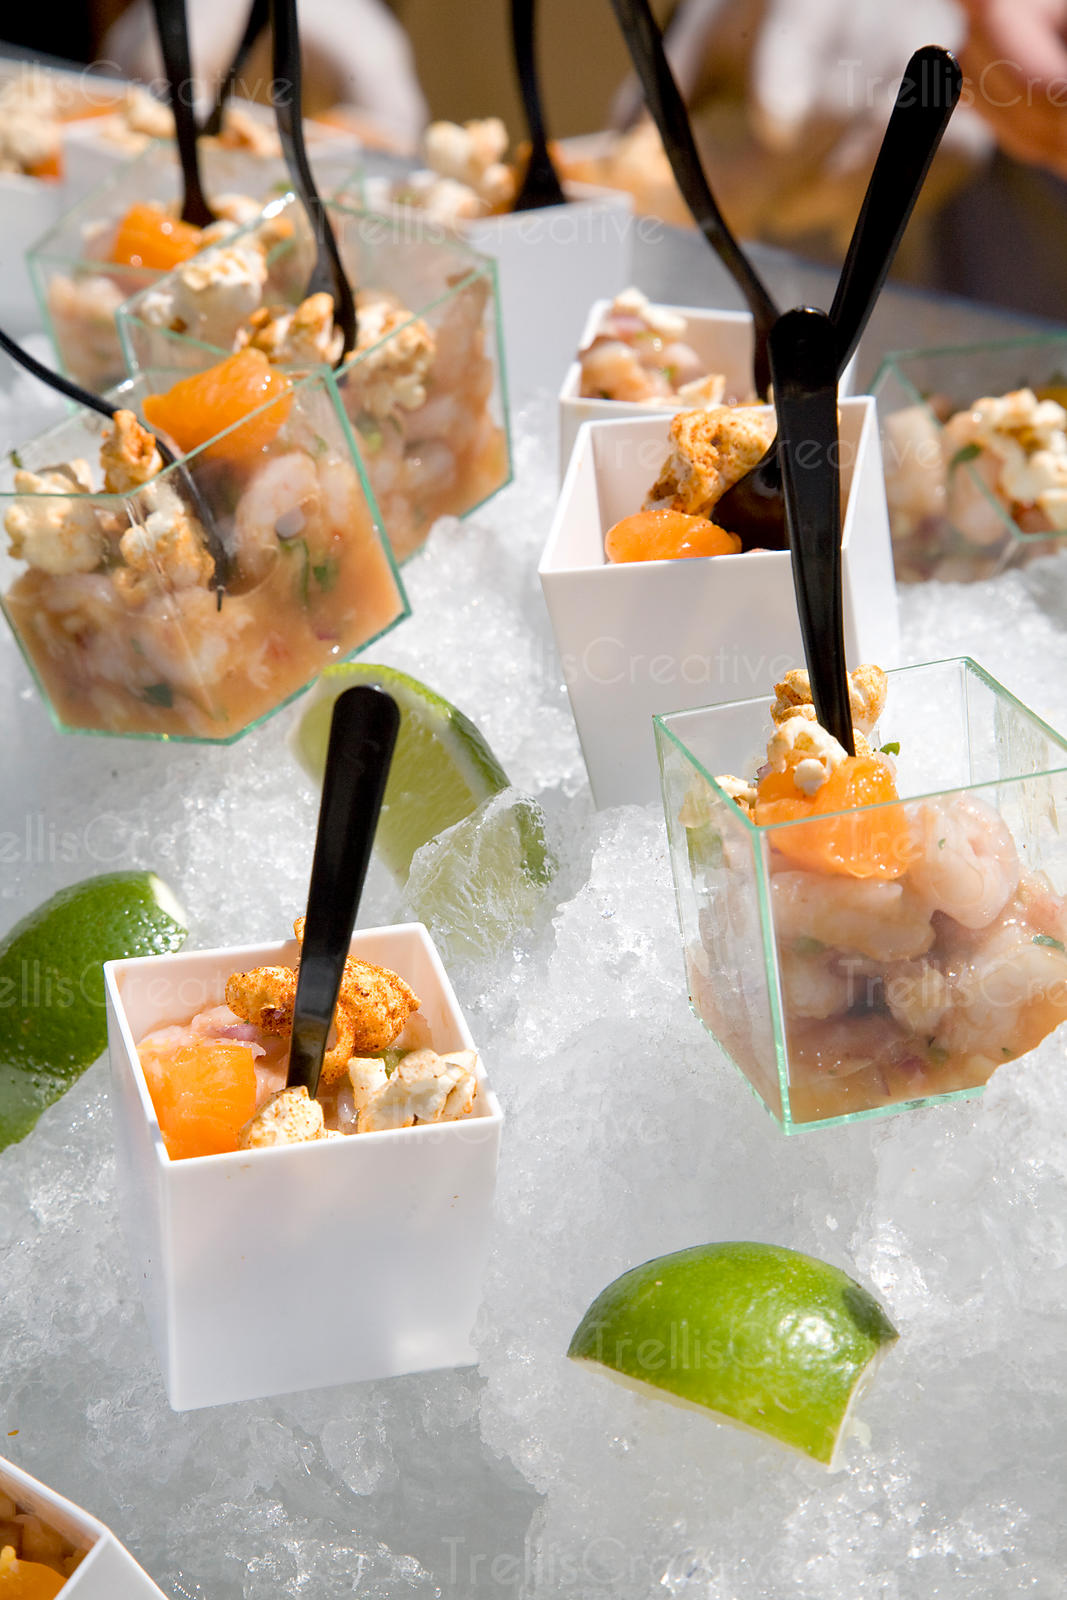 Small dishes of shrimp ceviche on a bed of ice